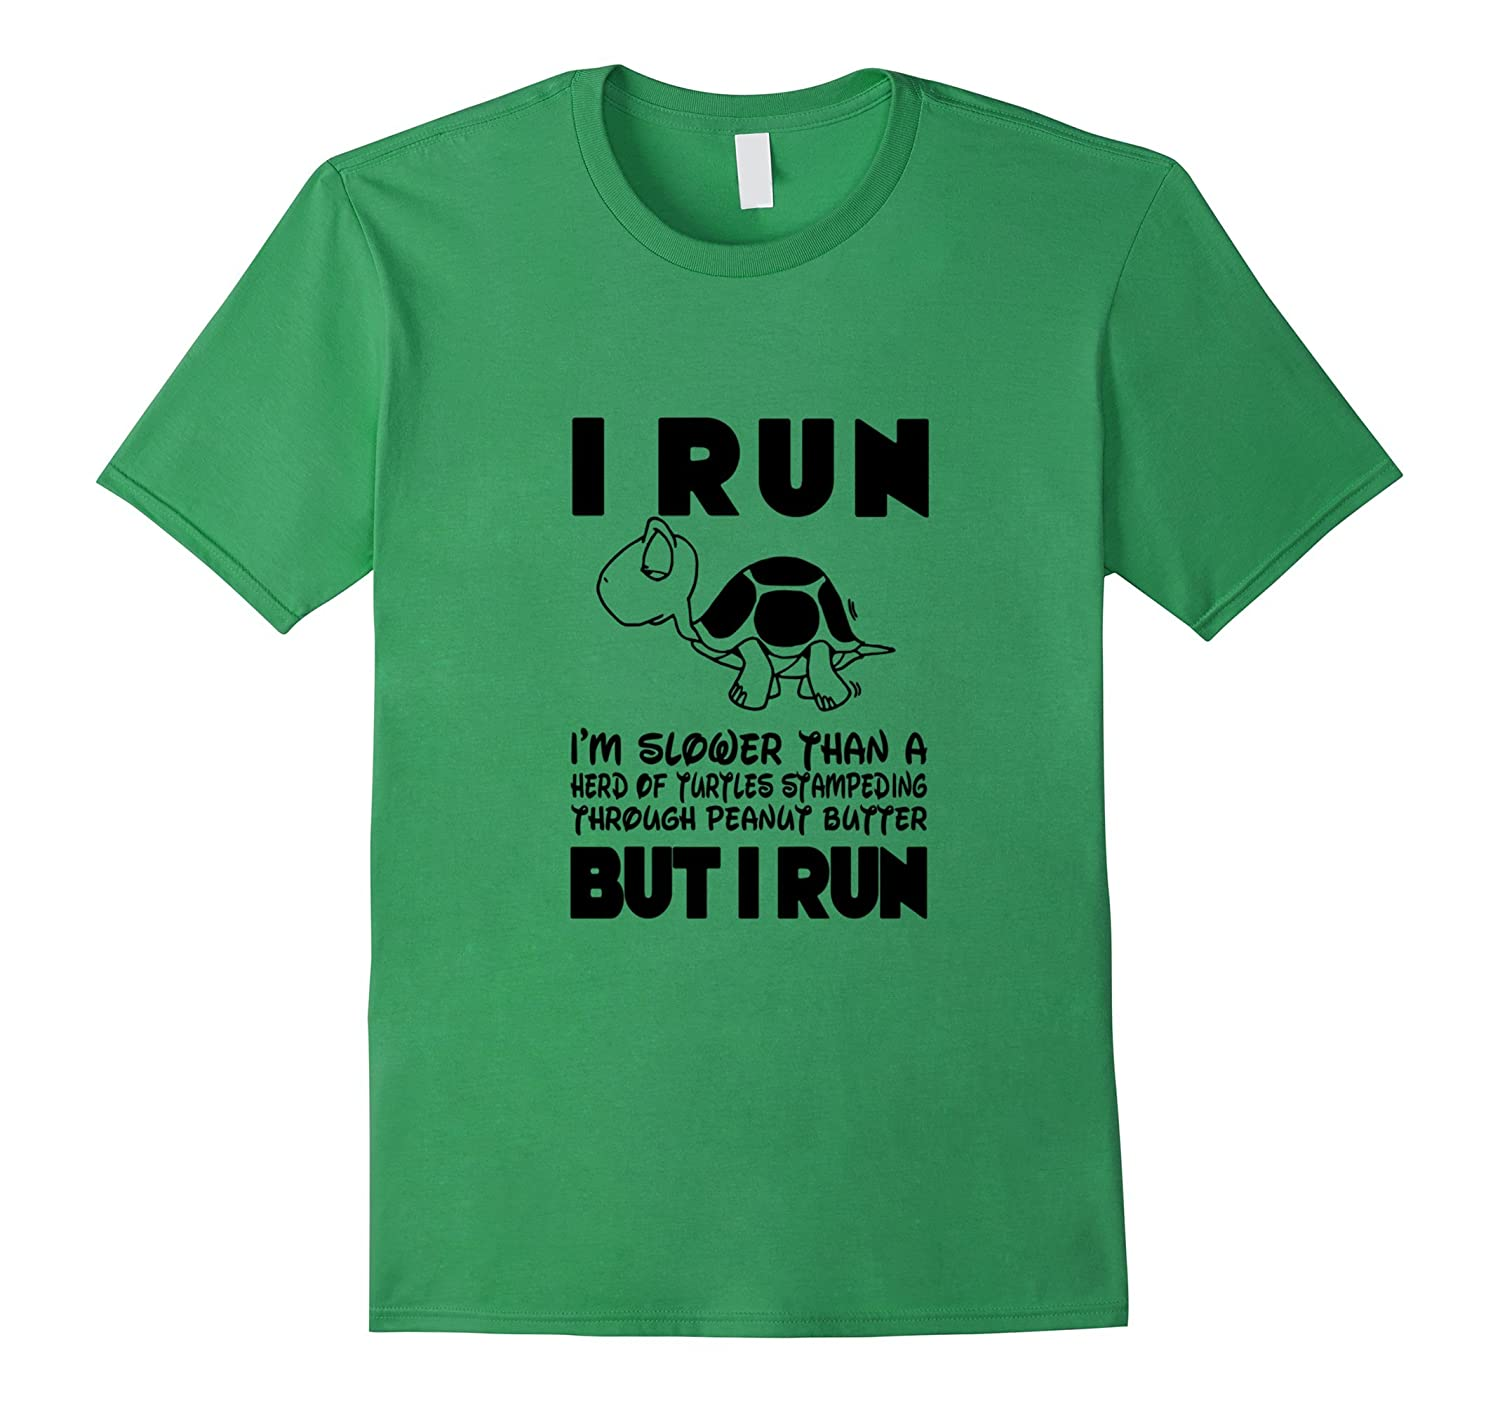 I Run Im slower than a turtle but I Run T-shirt-TD